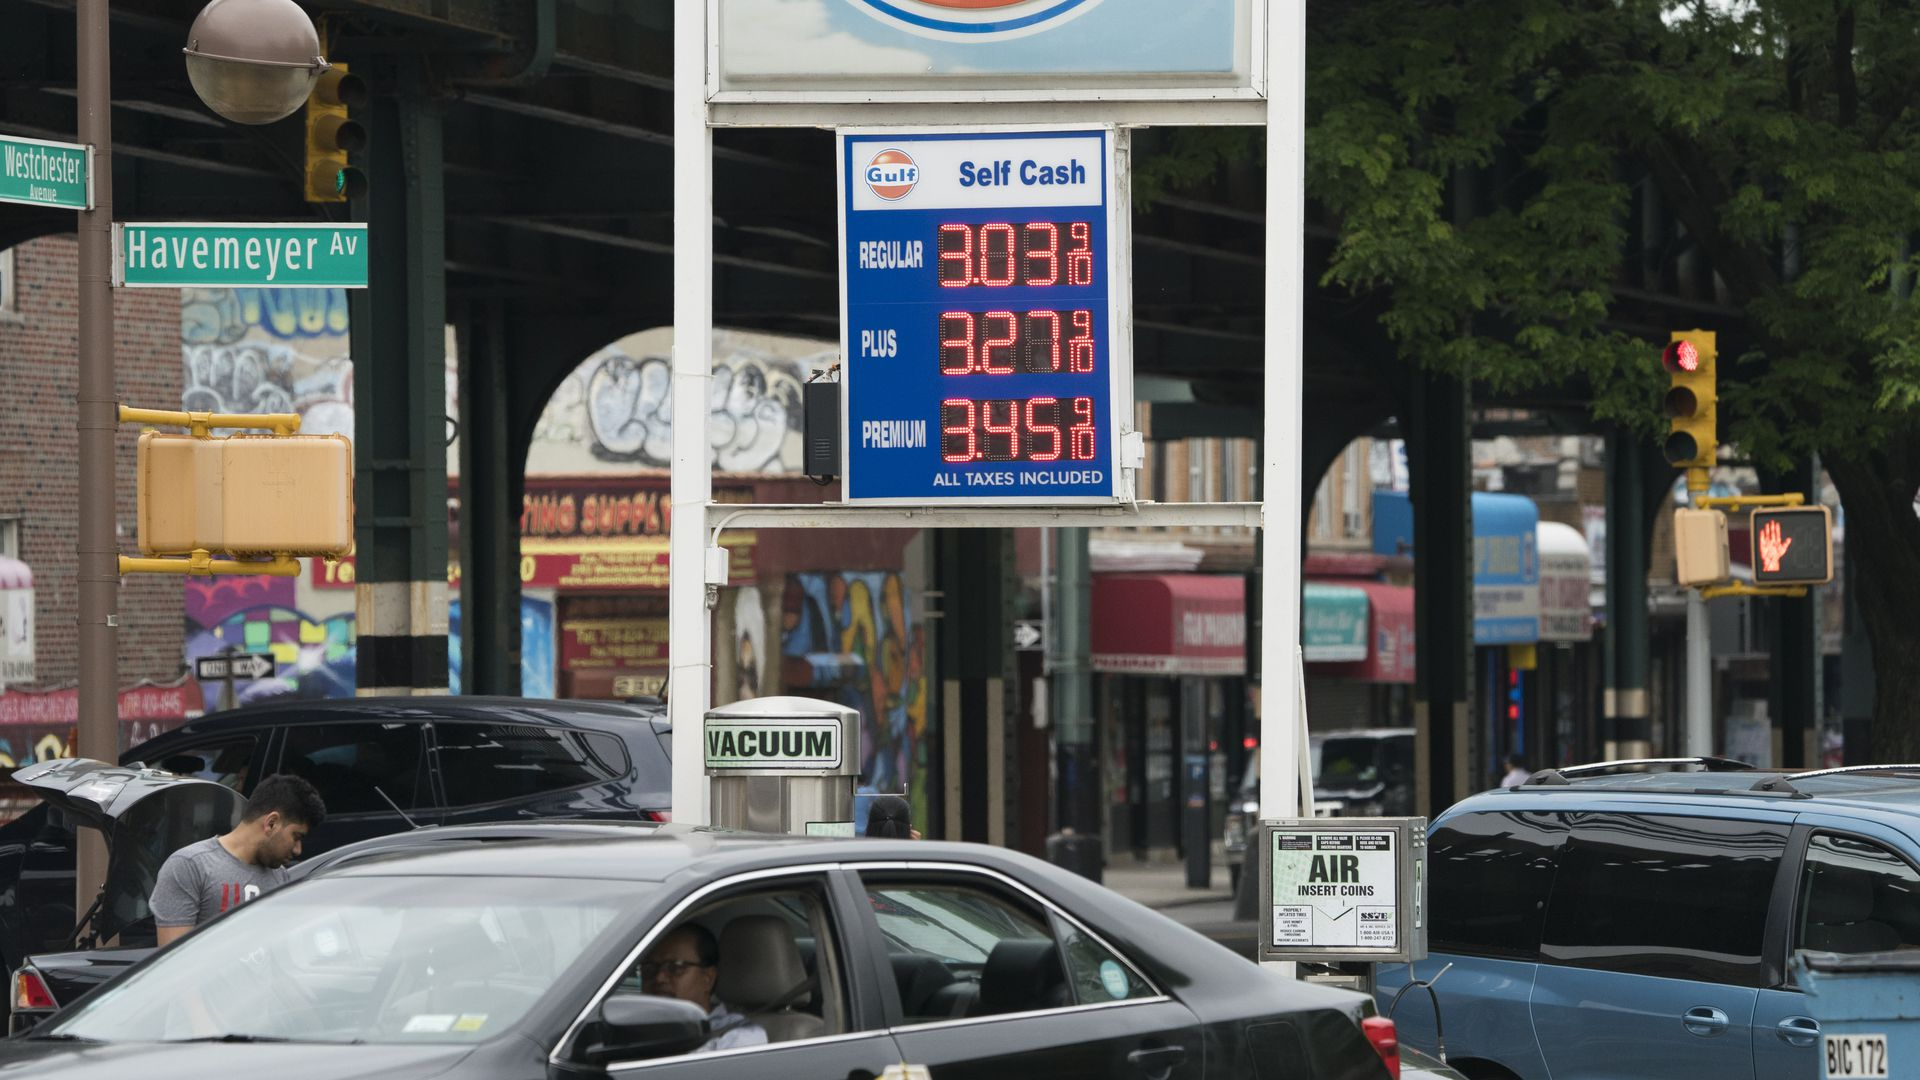 Customers pull their cars into a gas station in the Bronx, where gas prices have been raised to over $ 3.00 per gallon, June 1, 2018 in New York.